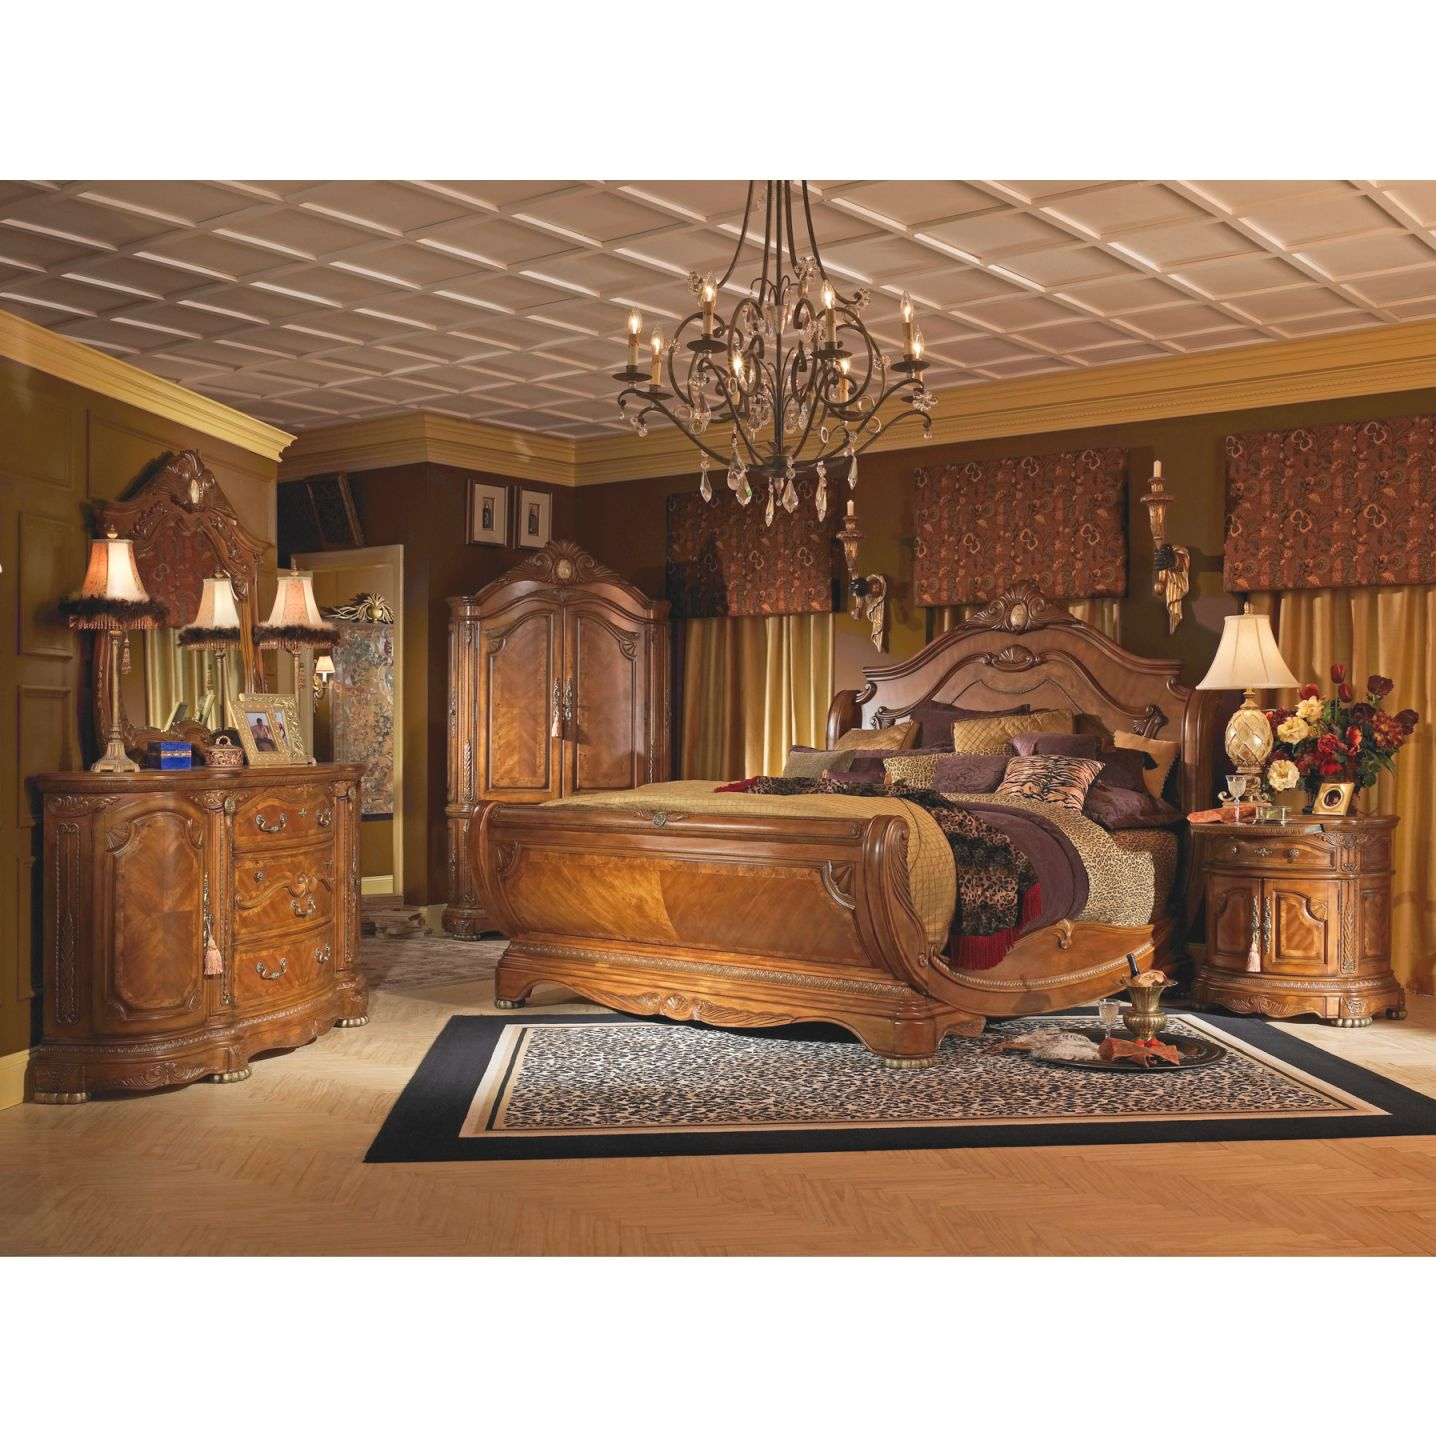 Aico Michael Amini 5Pc Cortina King Size Sleigh Bedroom Set In Honey Walnut Finish within Luxury Bedroom Sets King